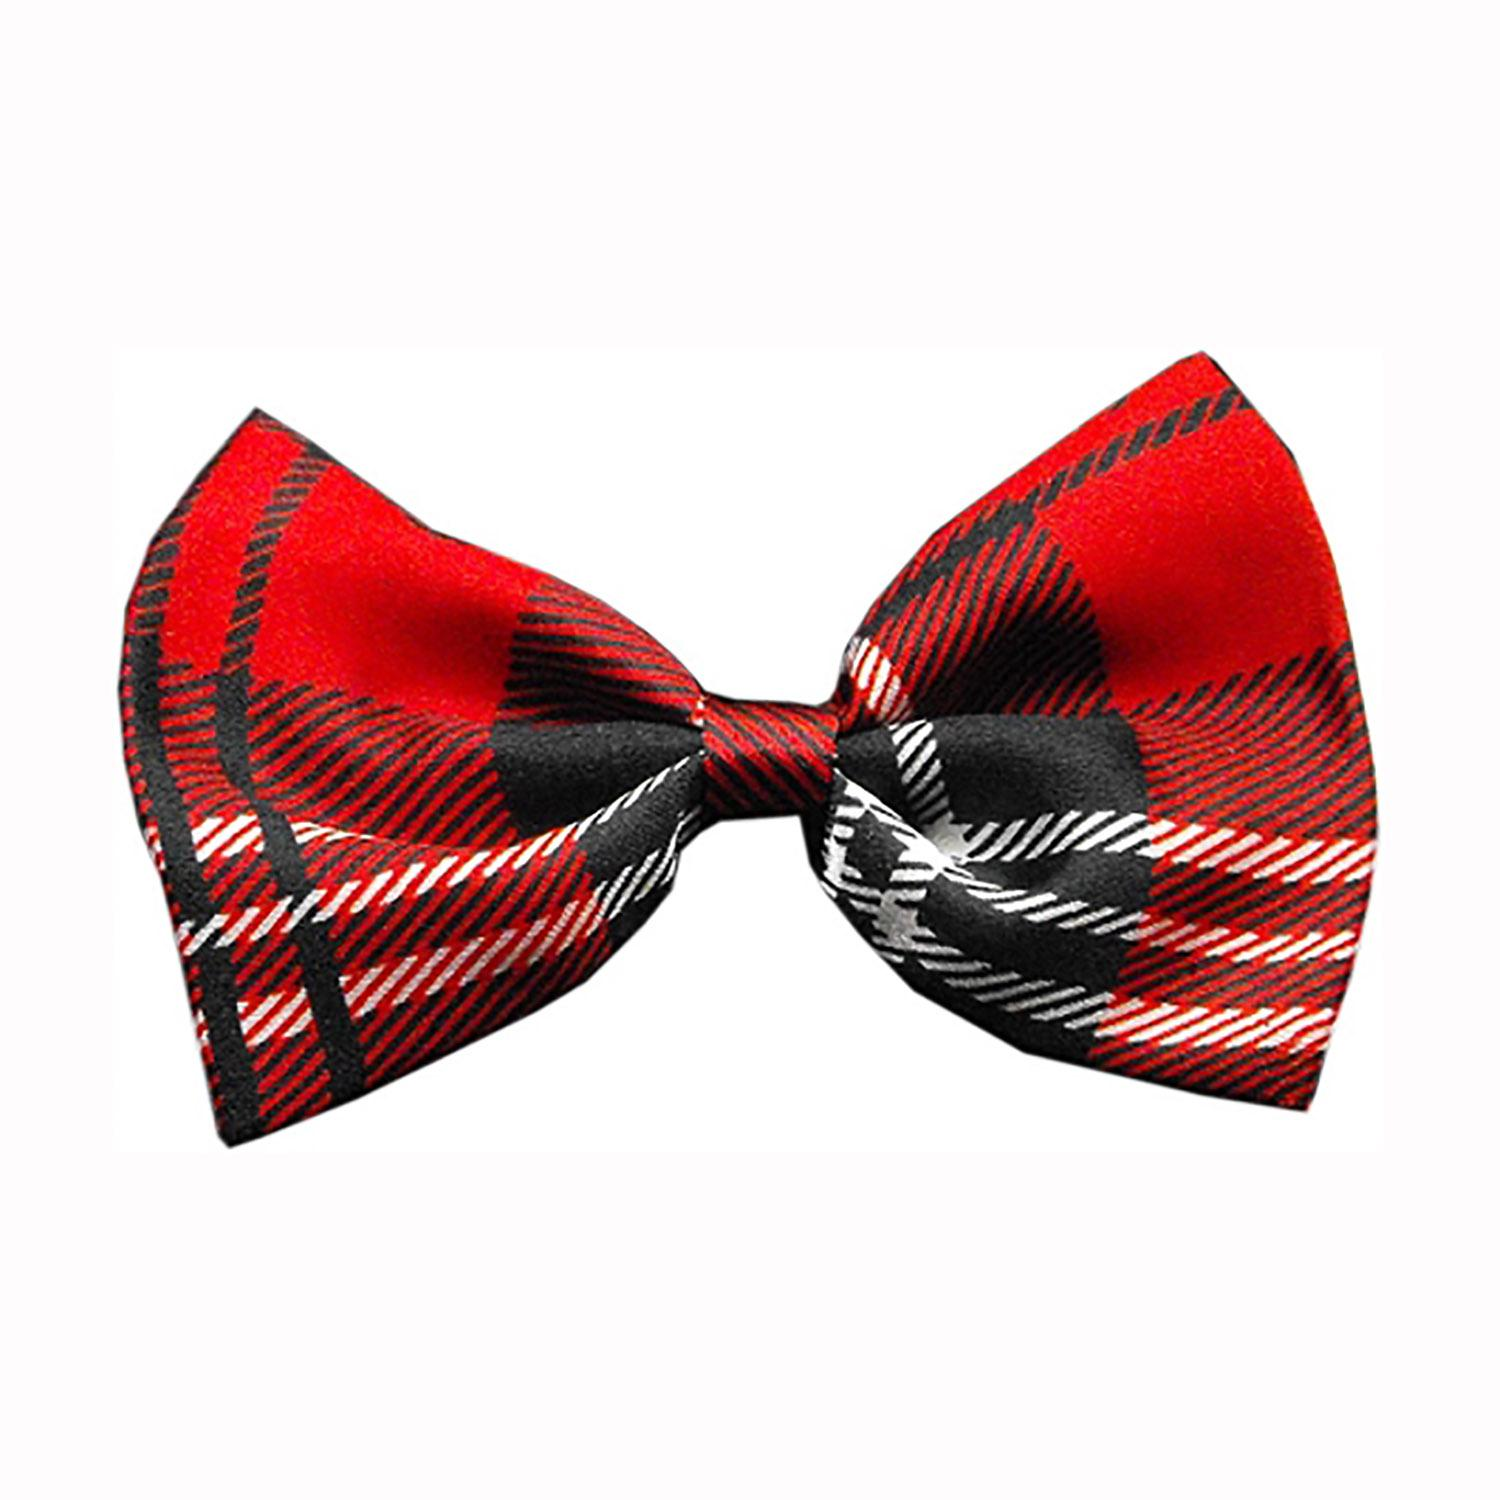 Plaid Dog Bow Tie - Red